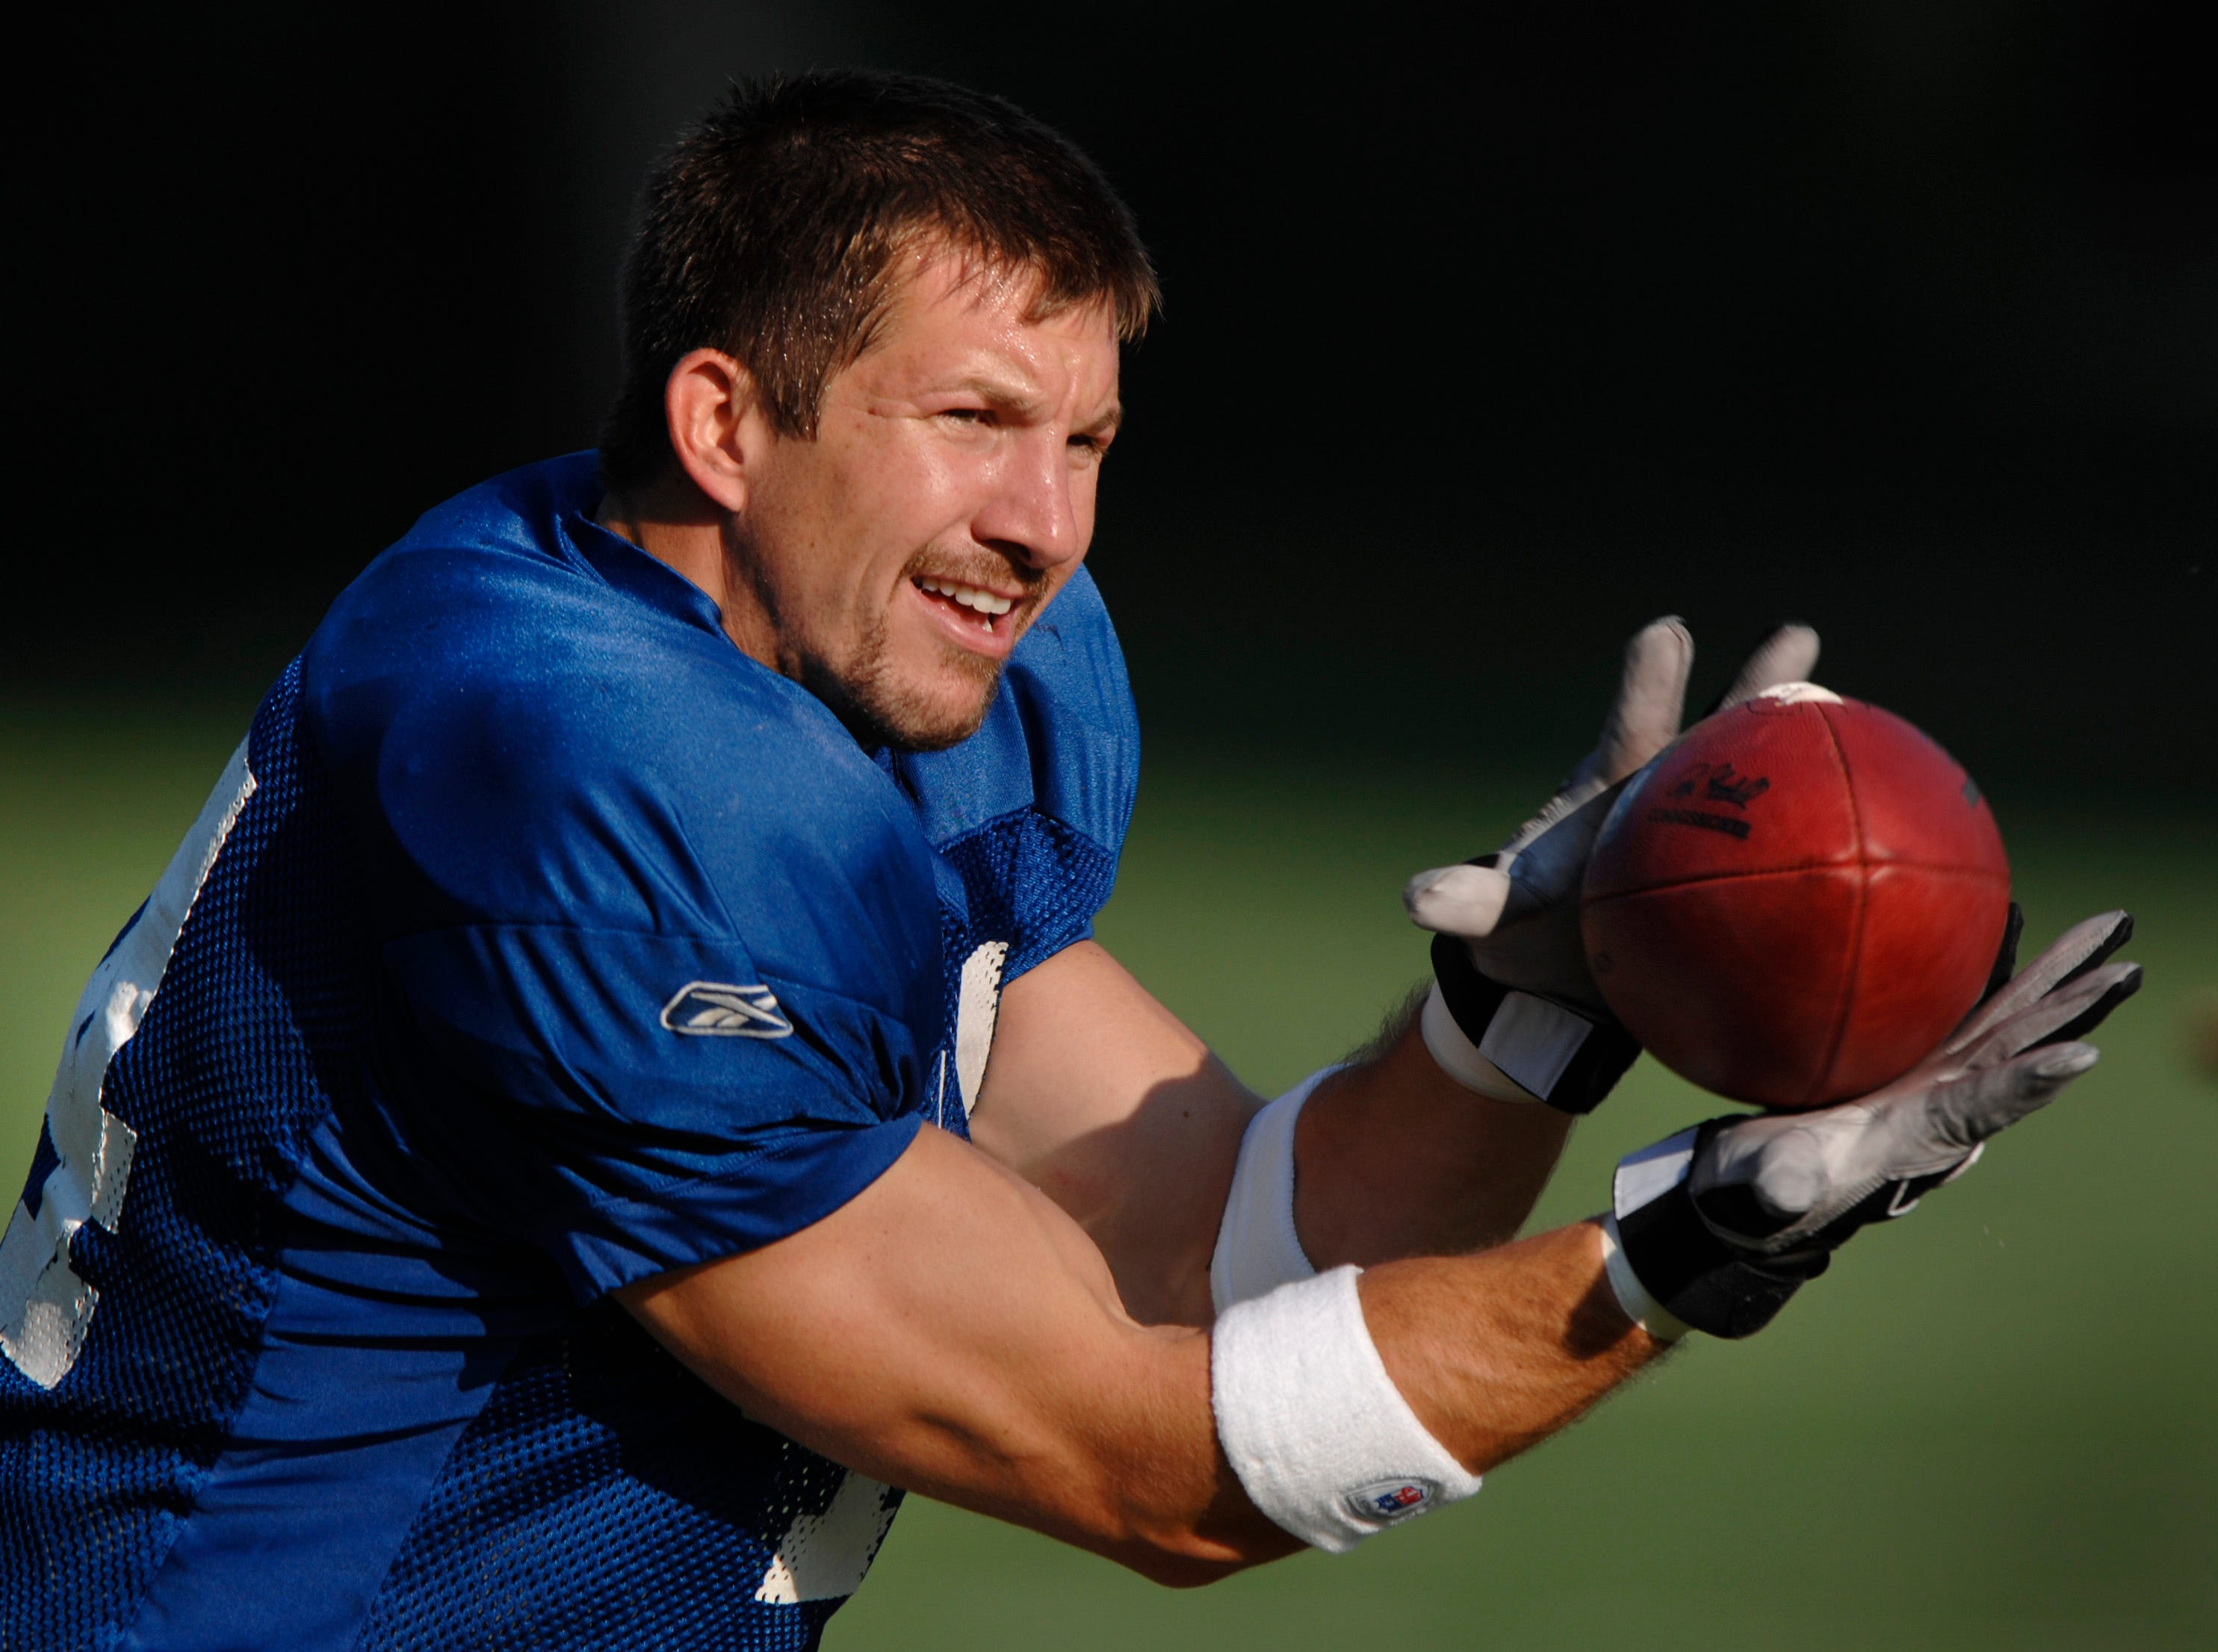 Dallas Clark catches a practice pass during morning practice at Colts training camp at Rose Hulman Institute of Technology in Terre Haute, IN on Monday, July 30, 2007 in Terra Haute, IN.